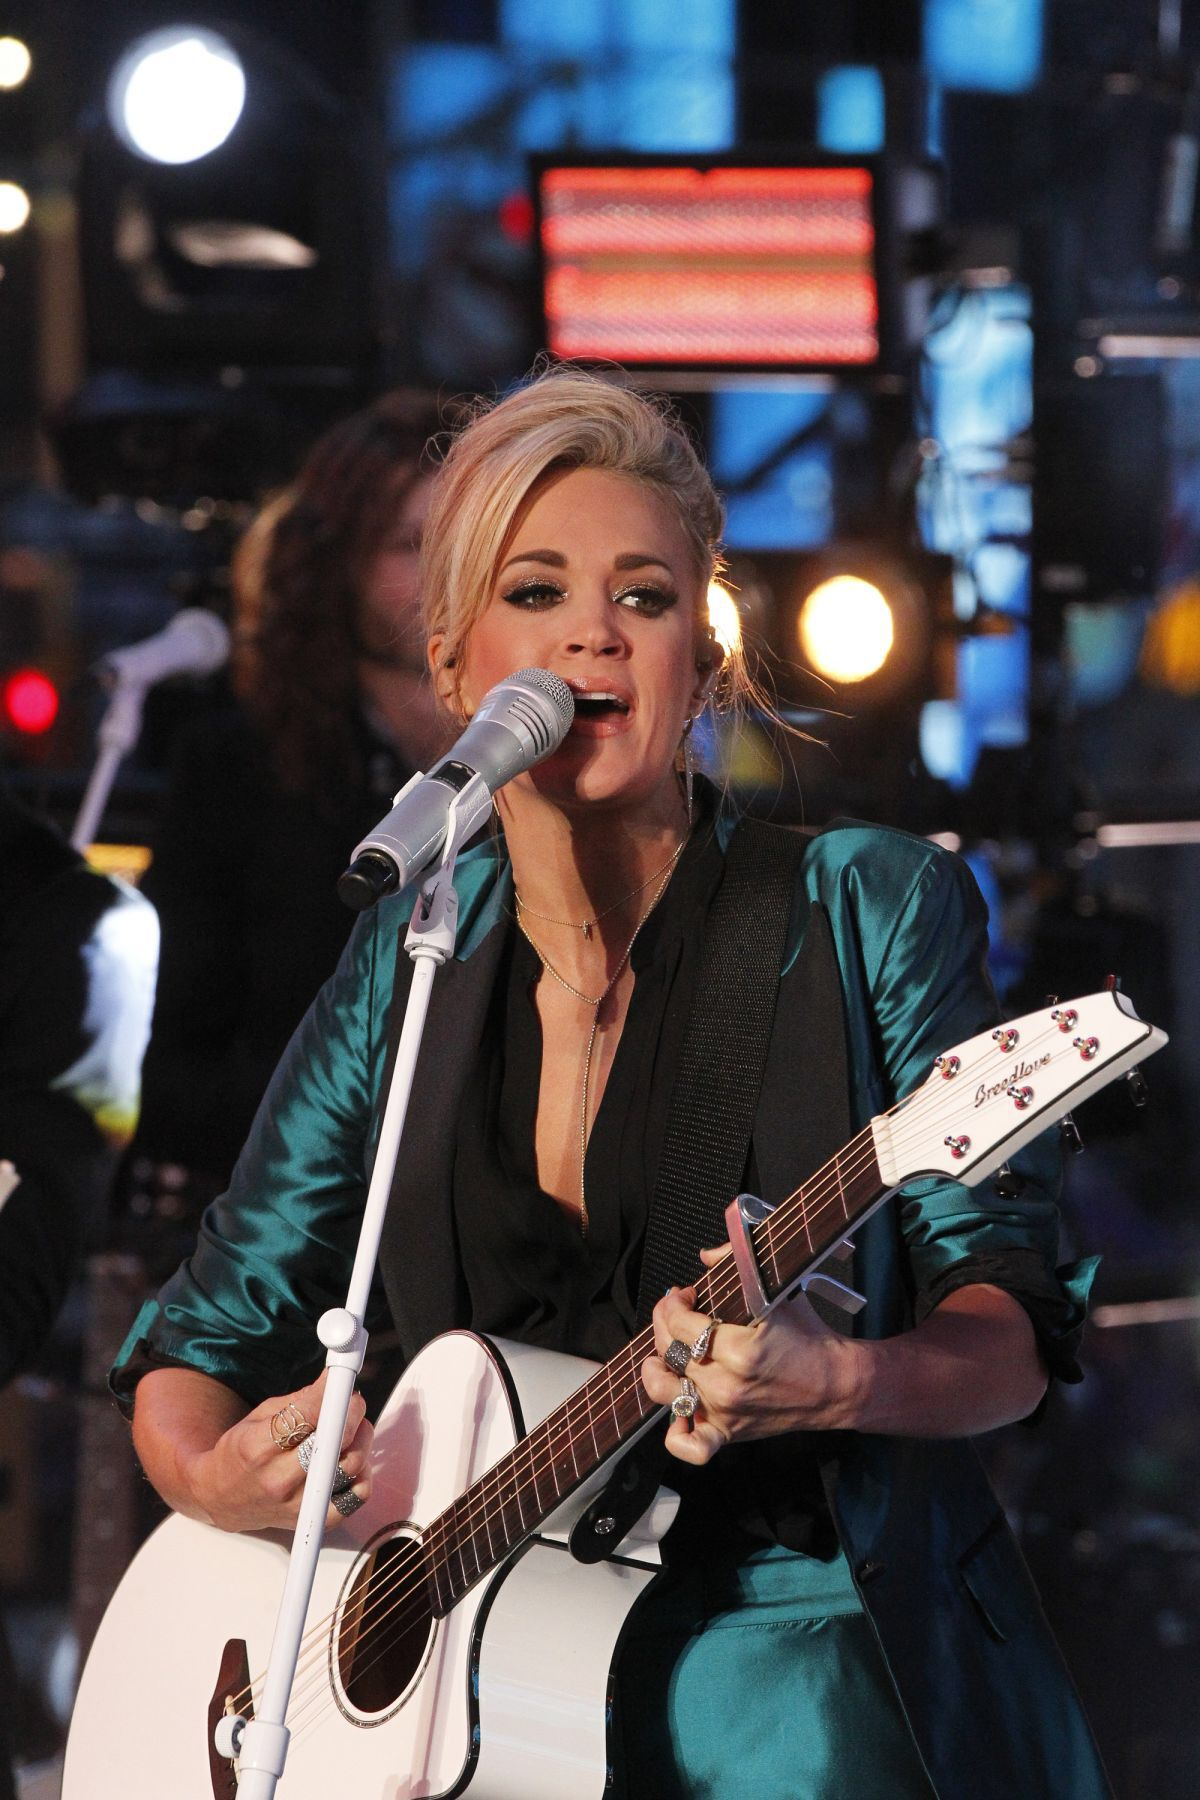 Carrie underwood performs at dick clarks pics 144